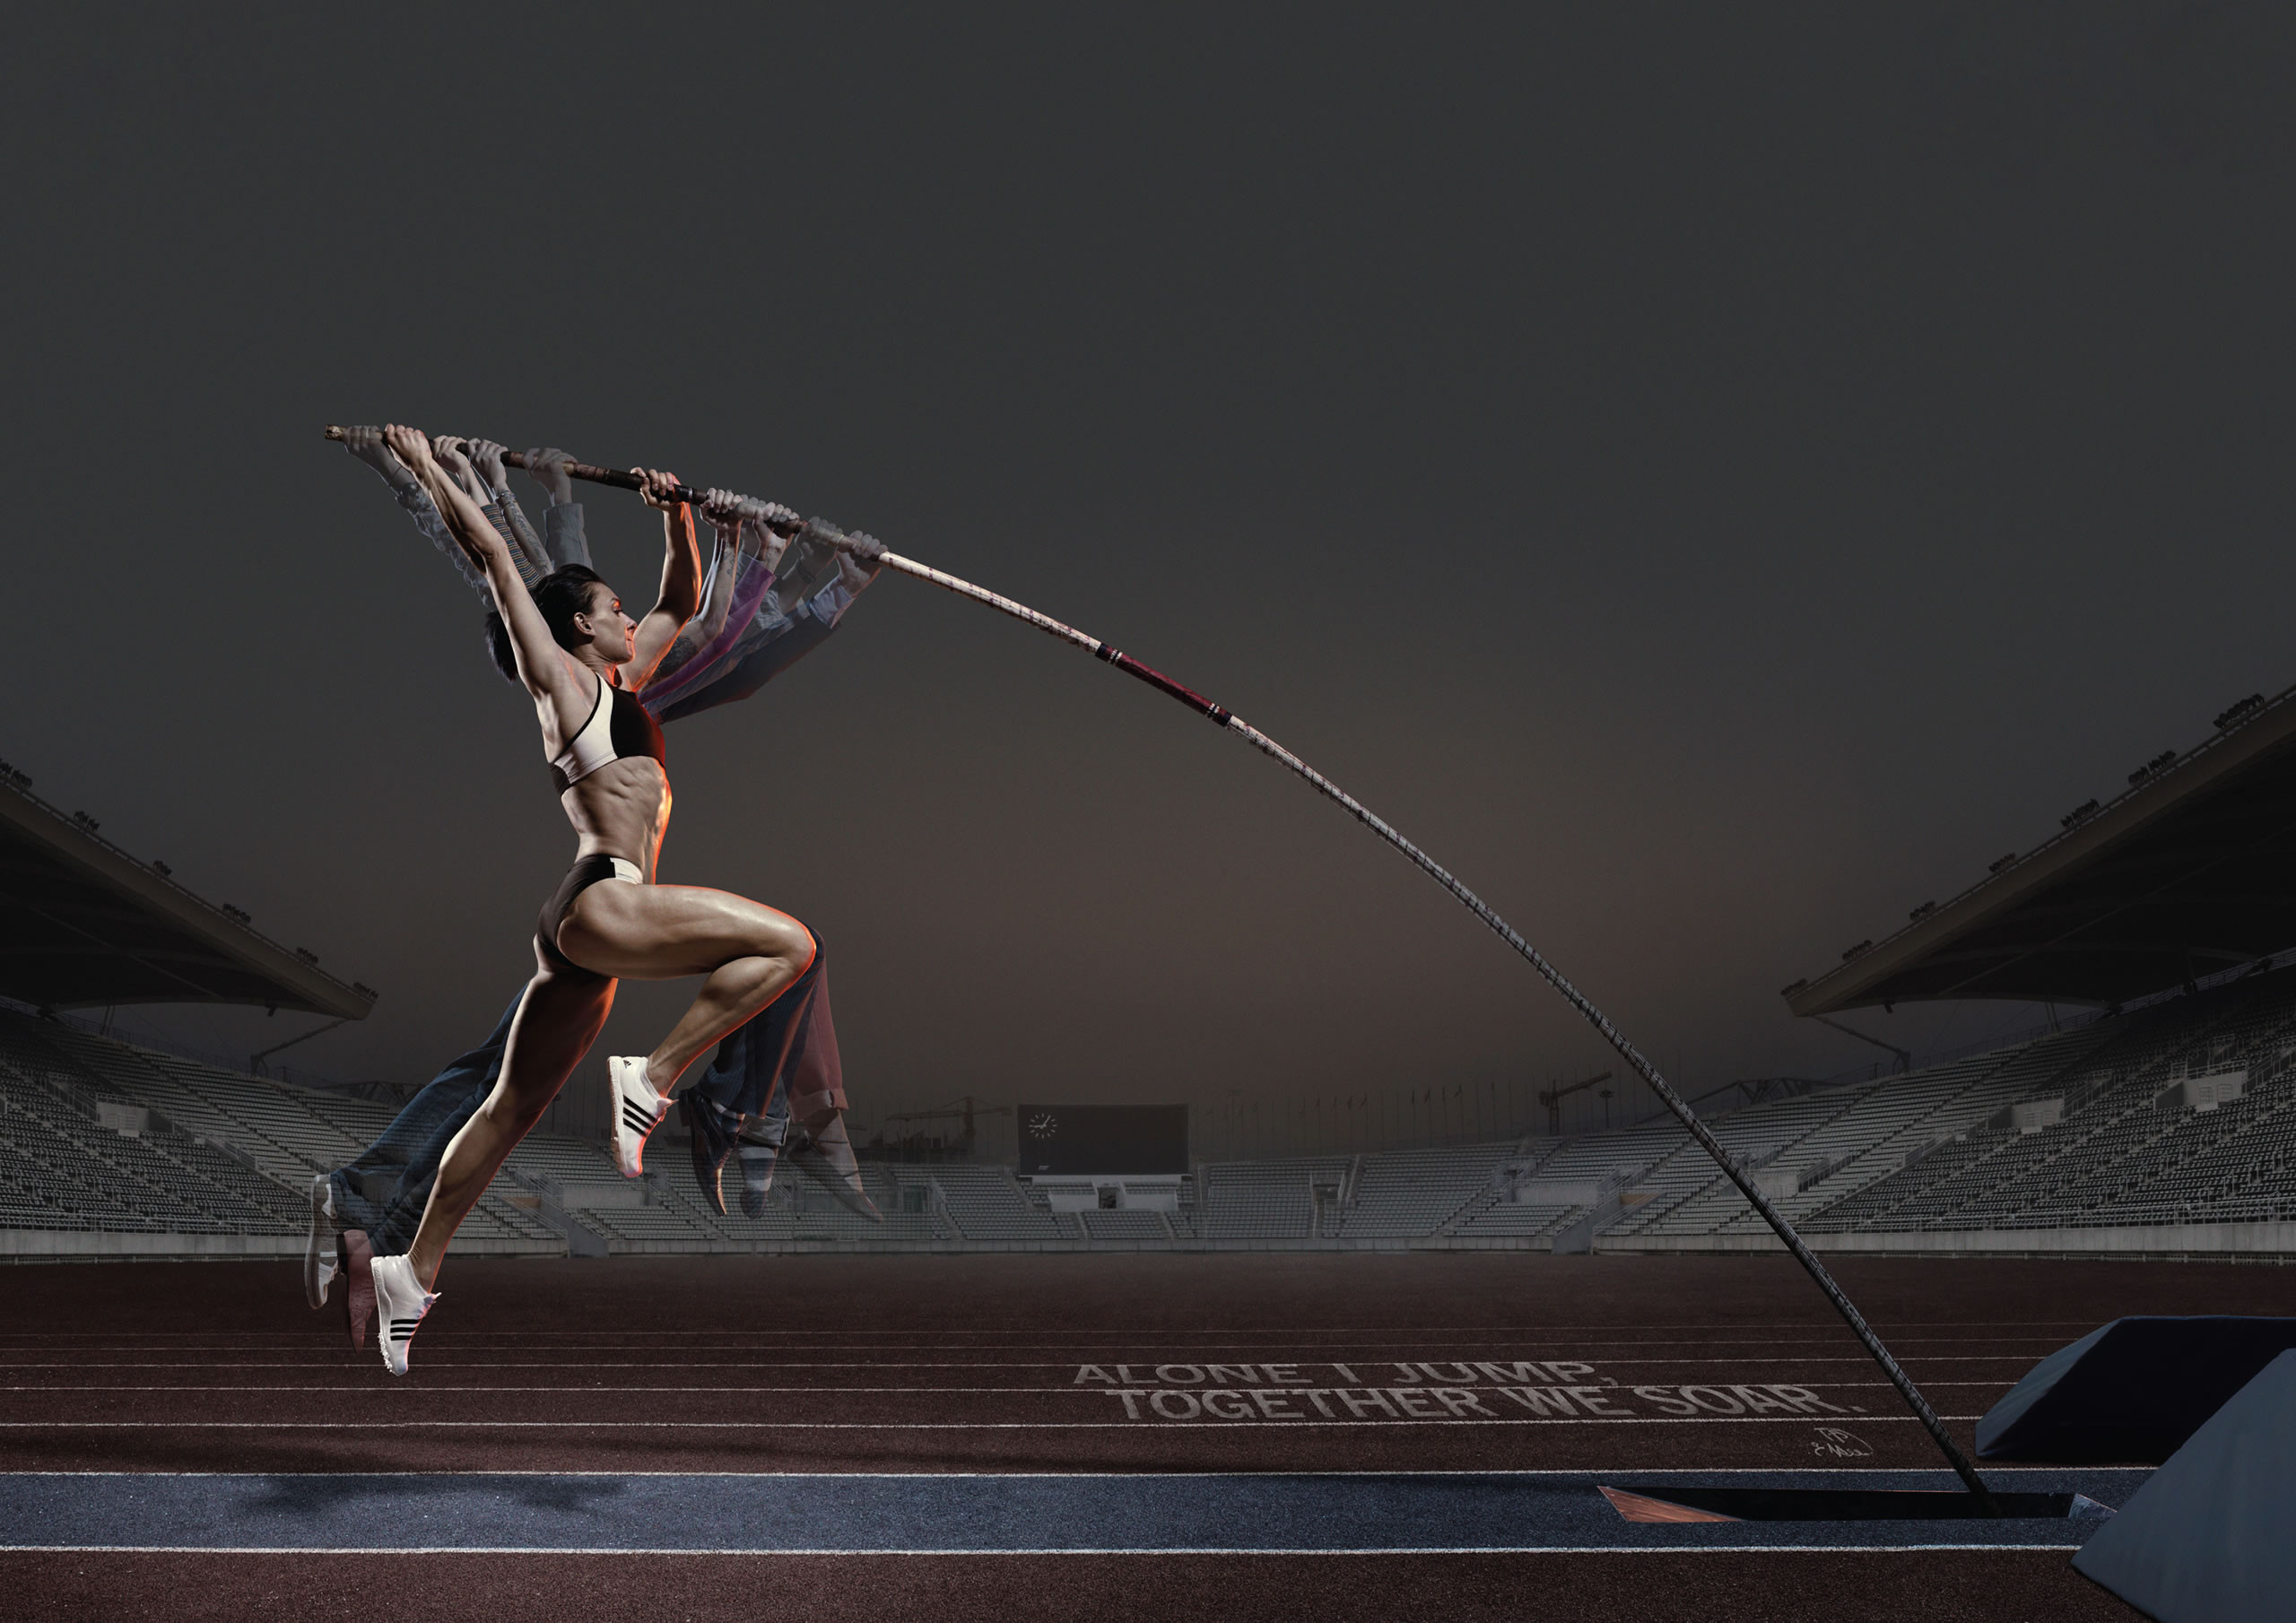 2560x1810 Pole vault Wallpaper, pole, girl, athlete, advertising, adidas .